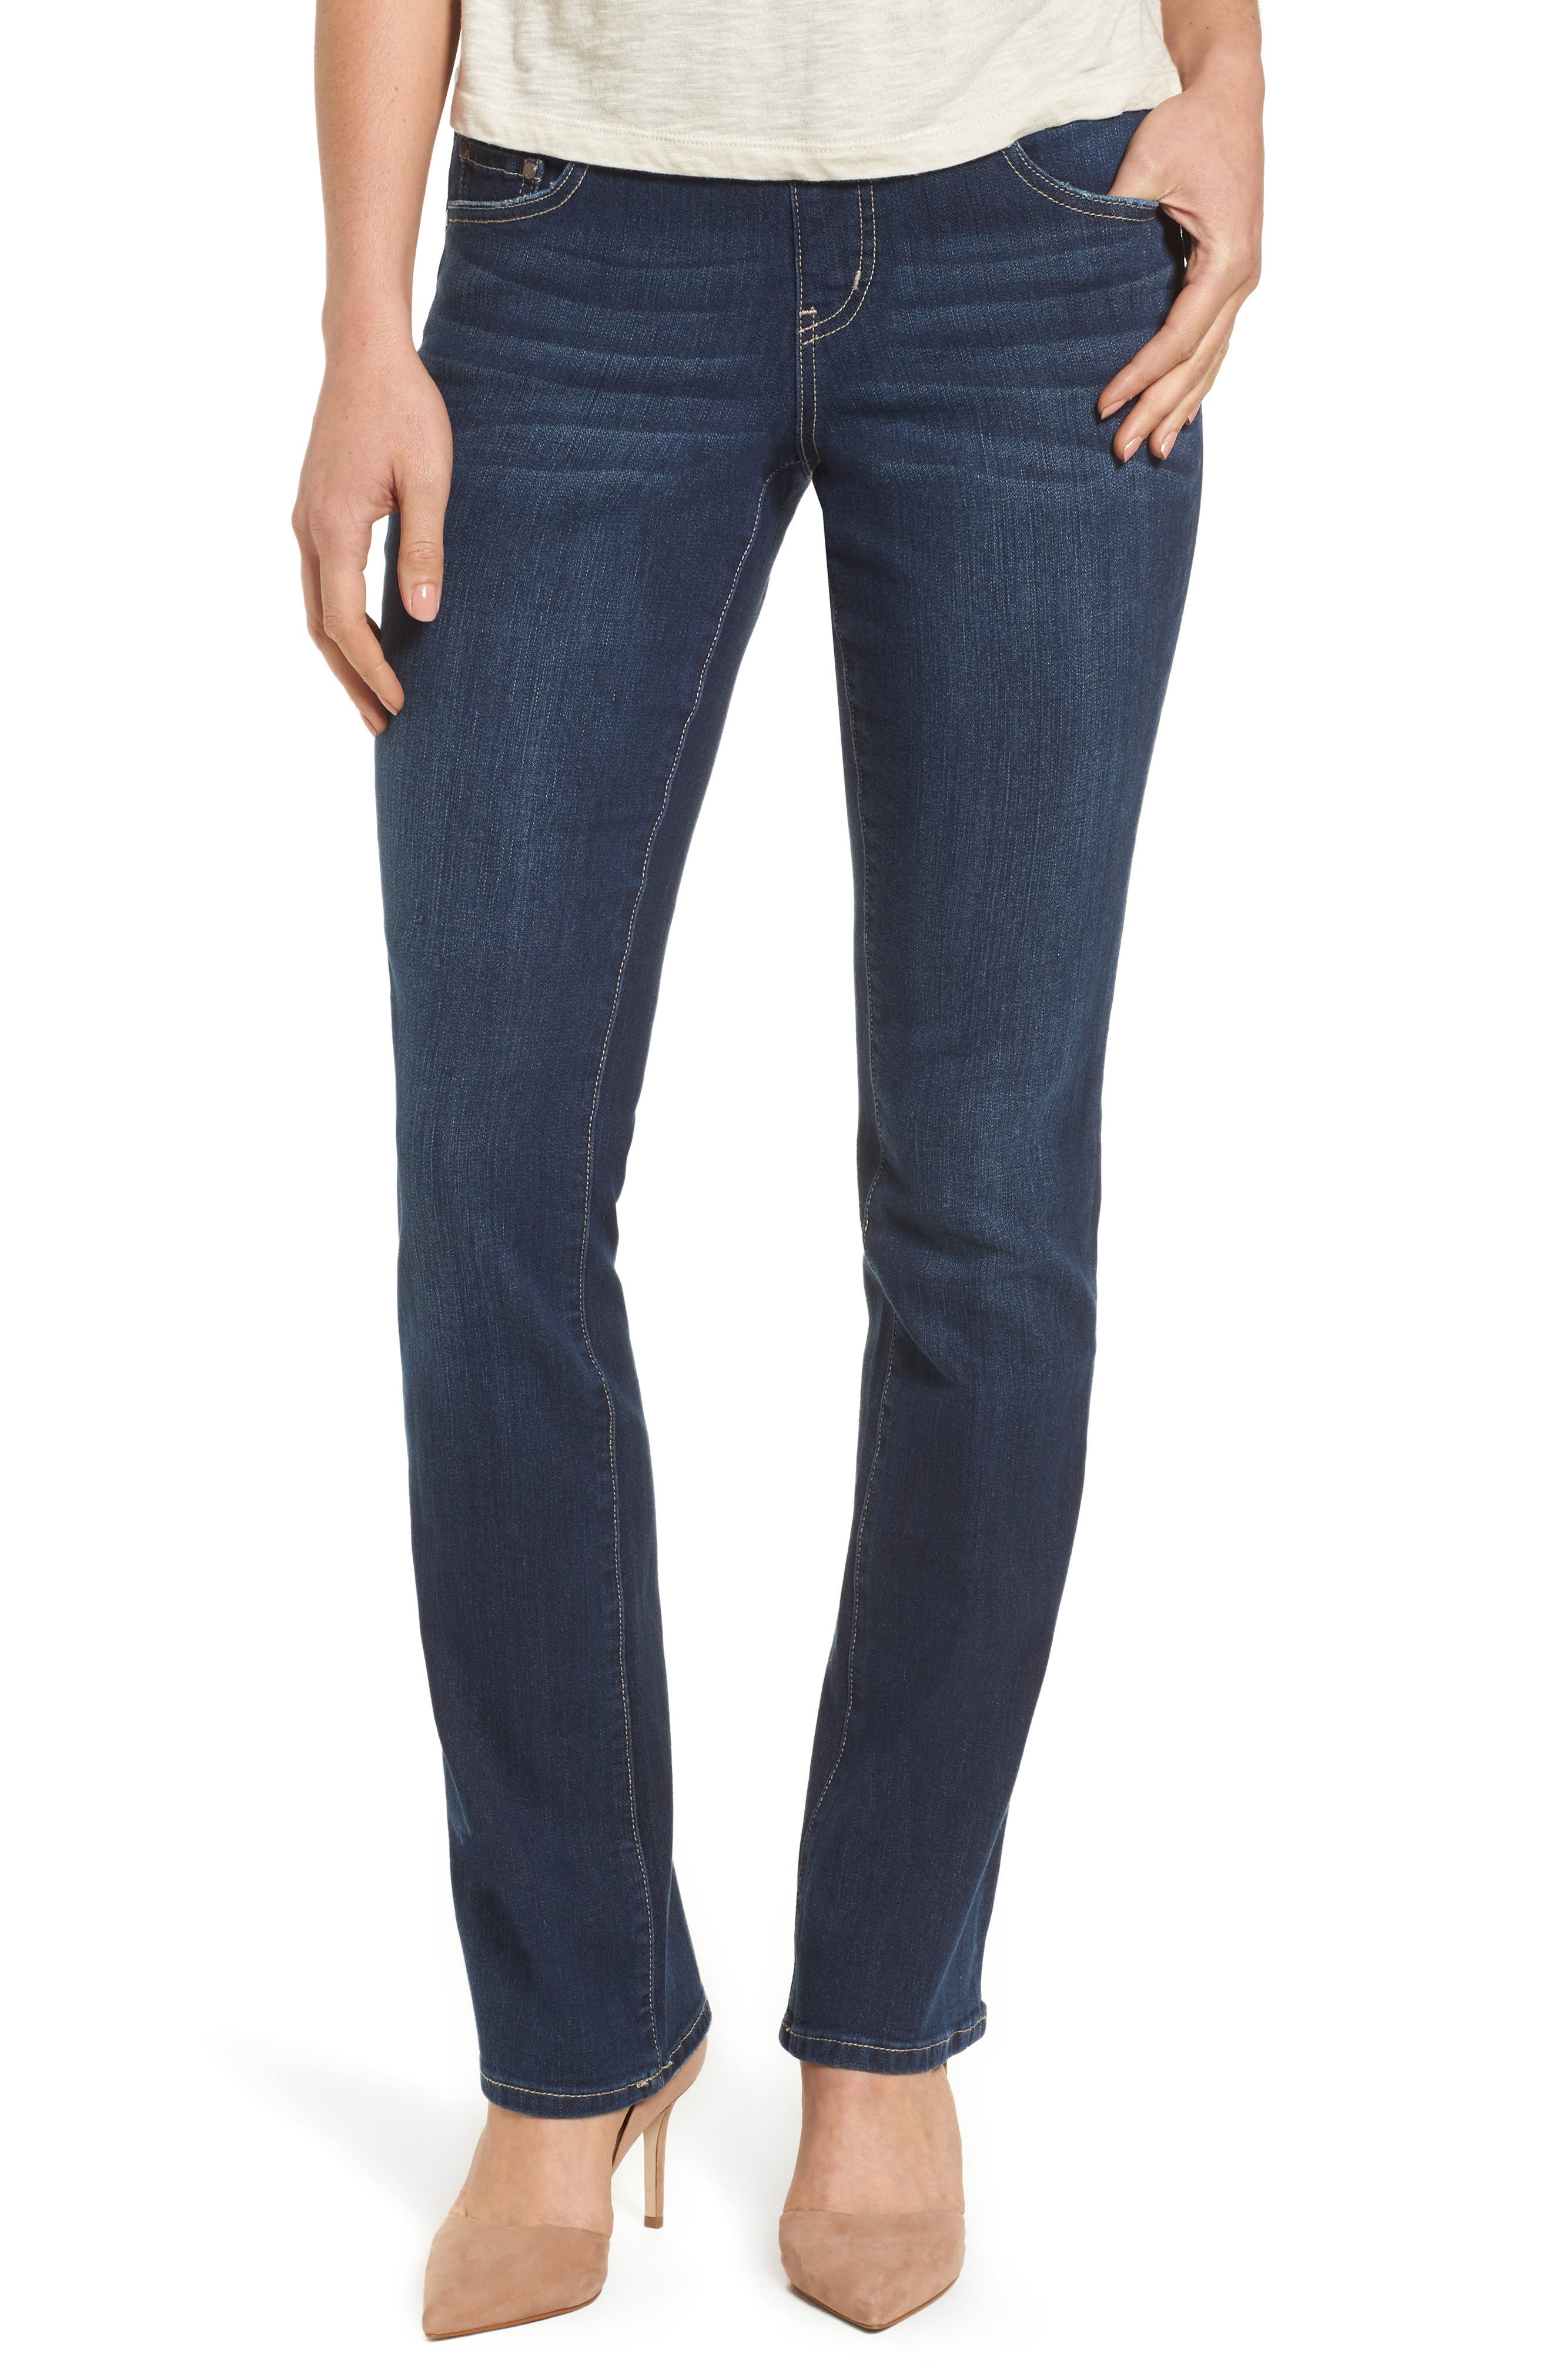 Paley Stretch Bootcut Jeans,                             Main thumbnail 1, color,                             DARK INDIGO